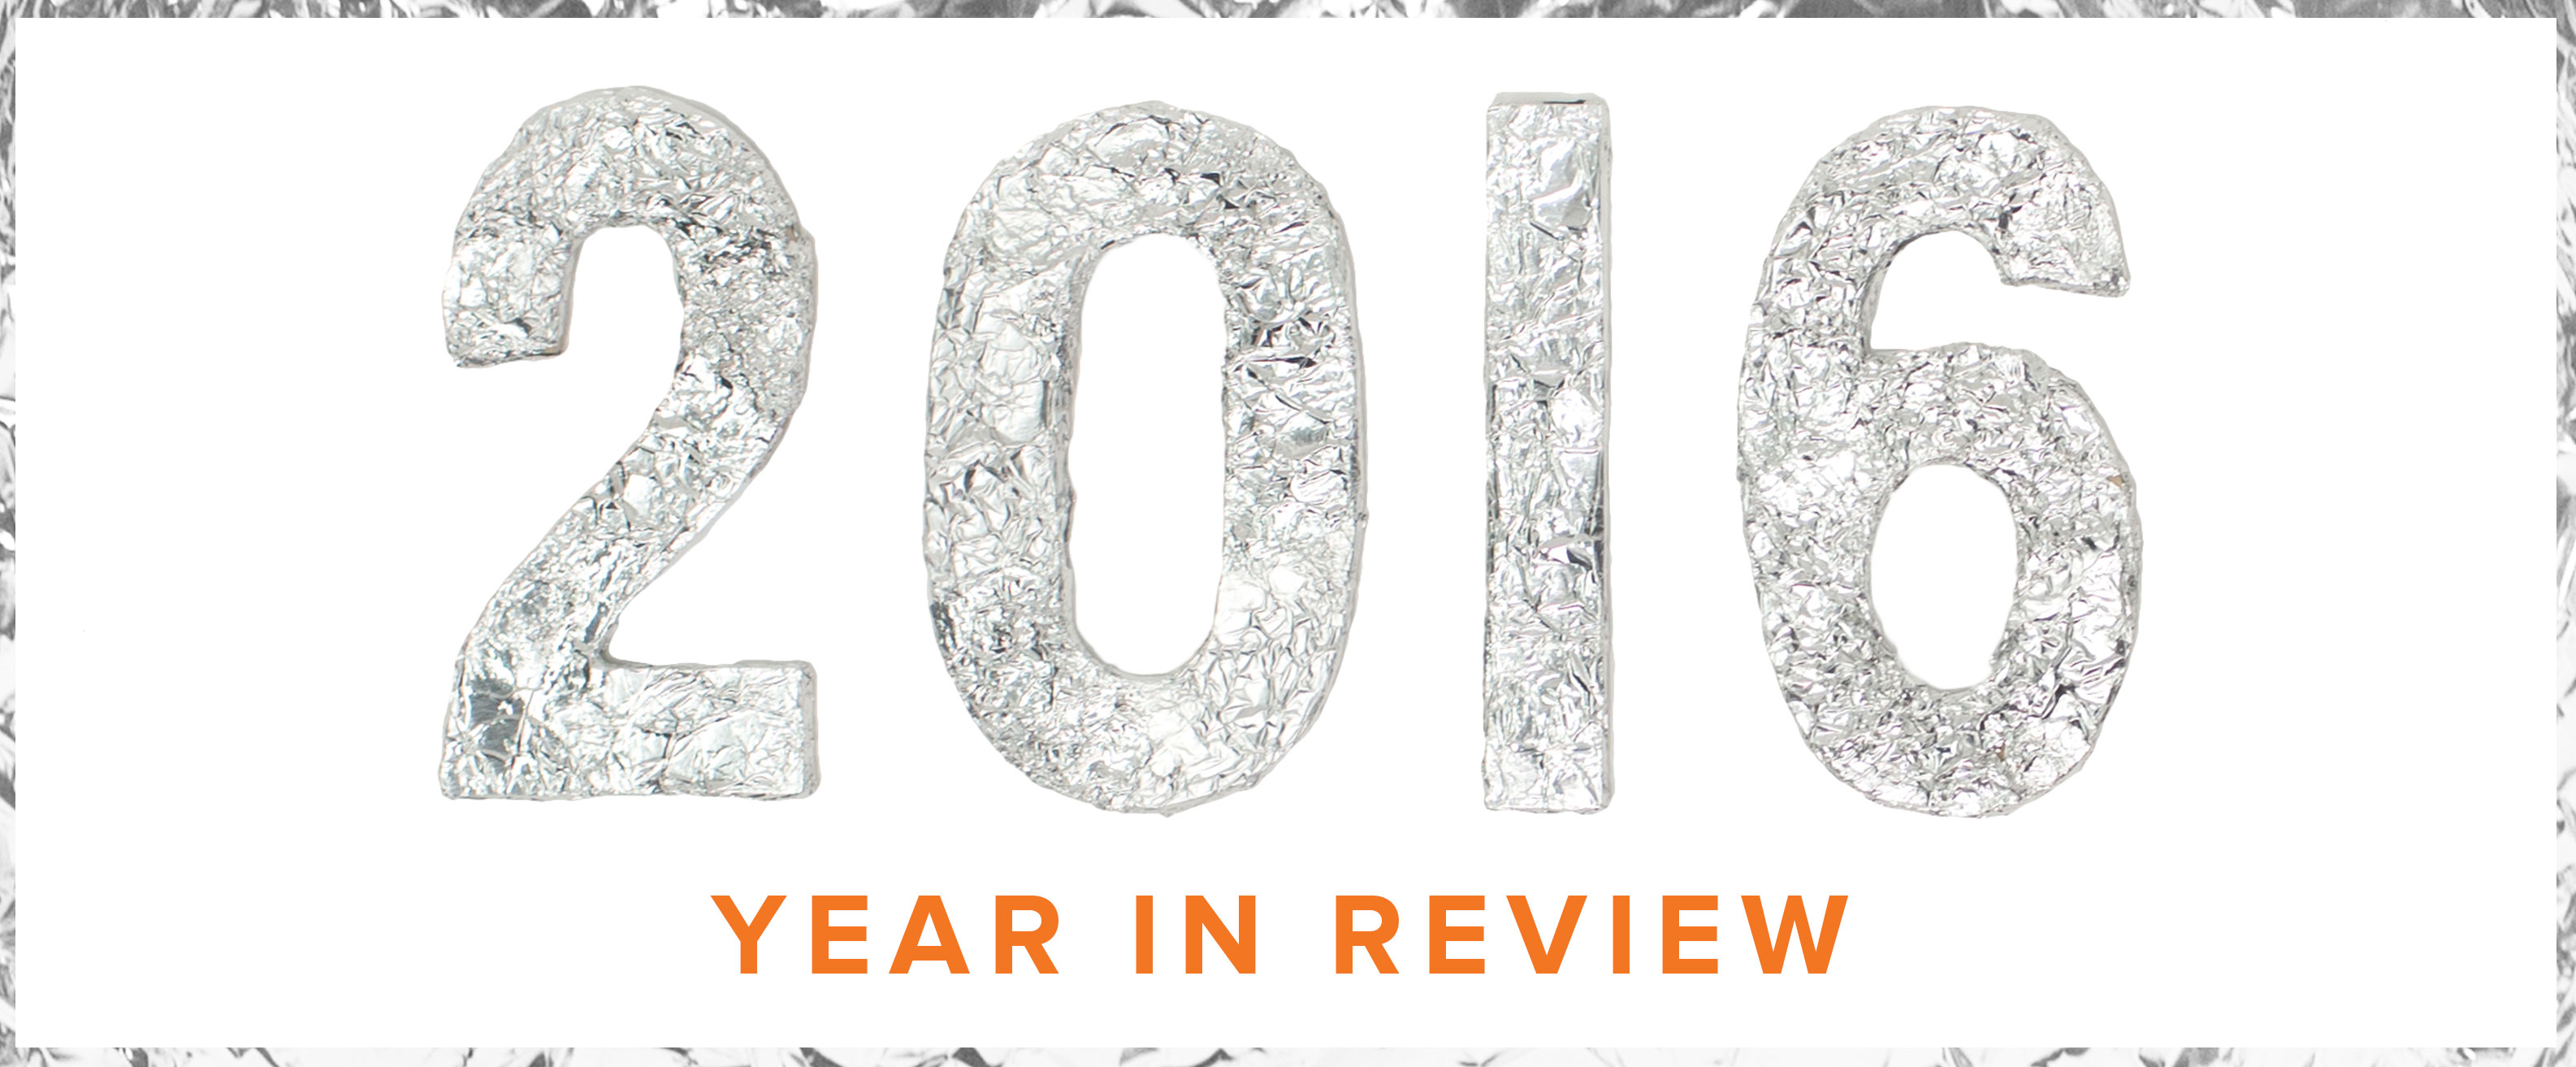 Why Is Everything at HubSpot Wrapped in Tin? It's Our Year in Review 2016